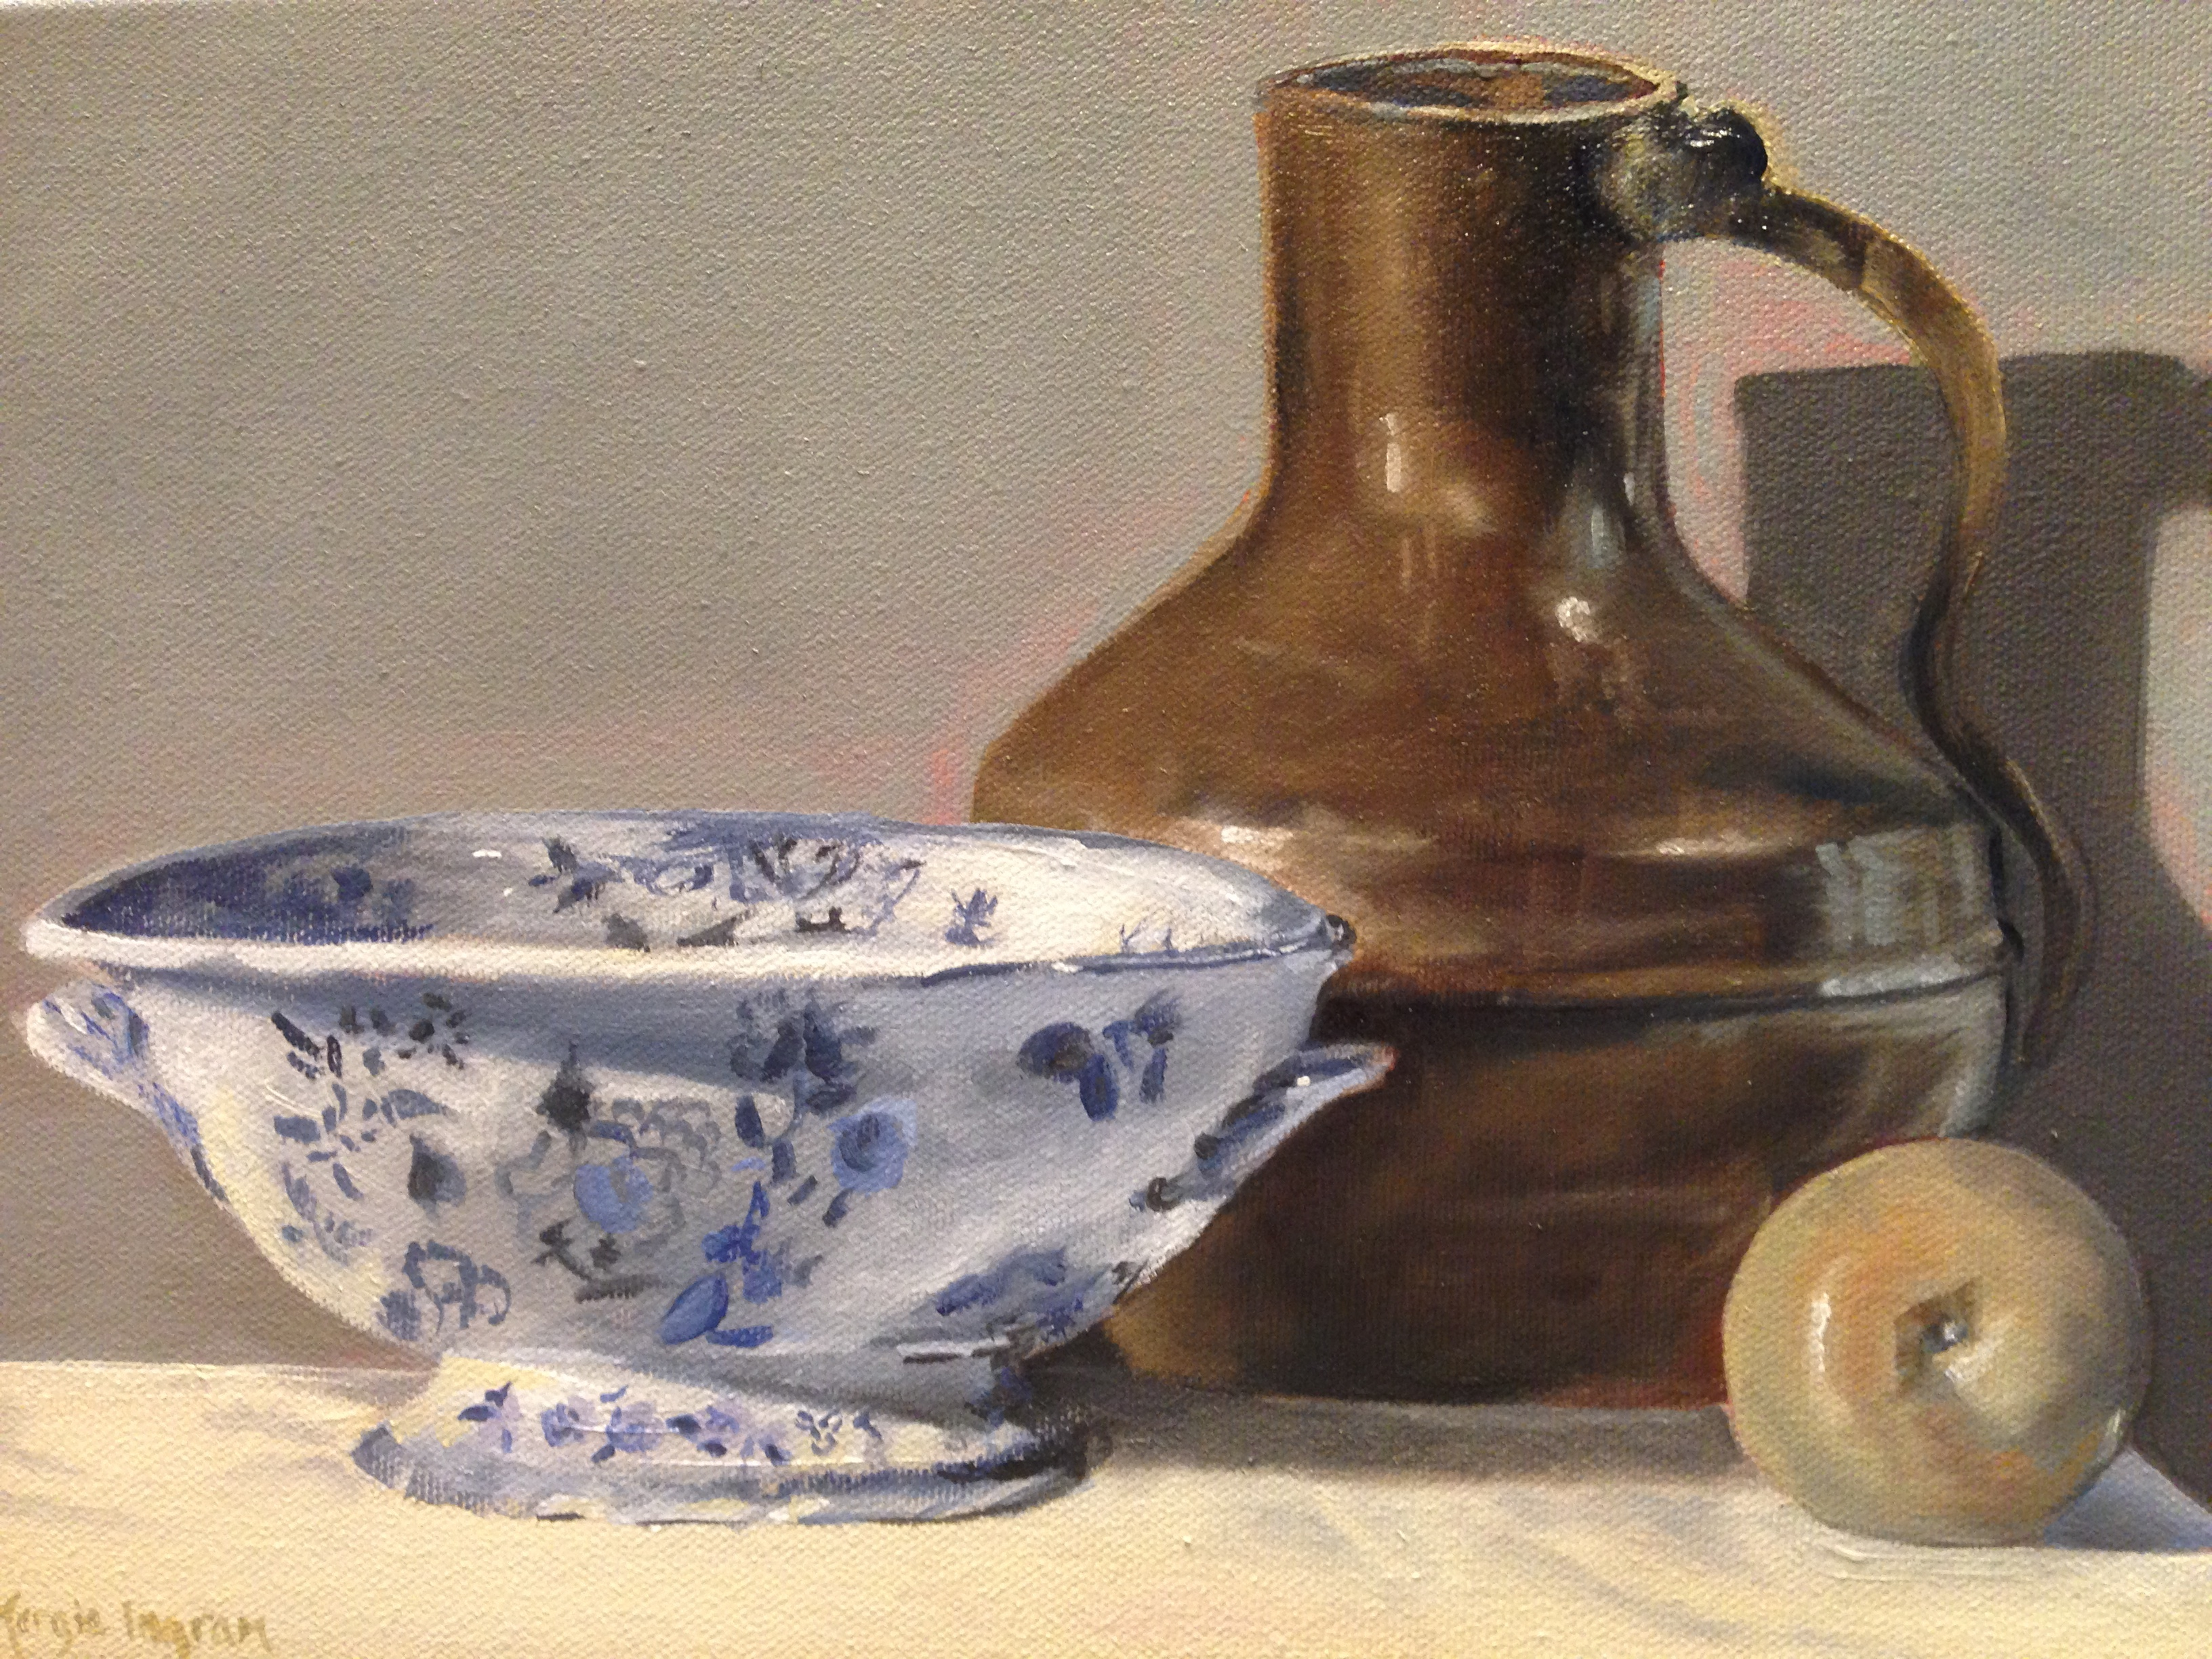 Blue and White China with Pitcher